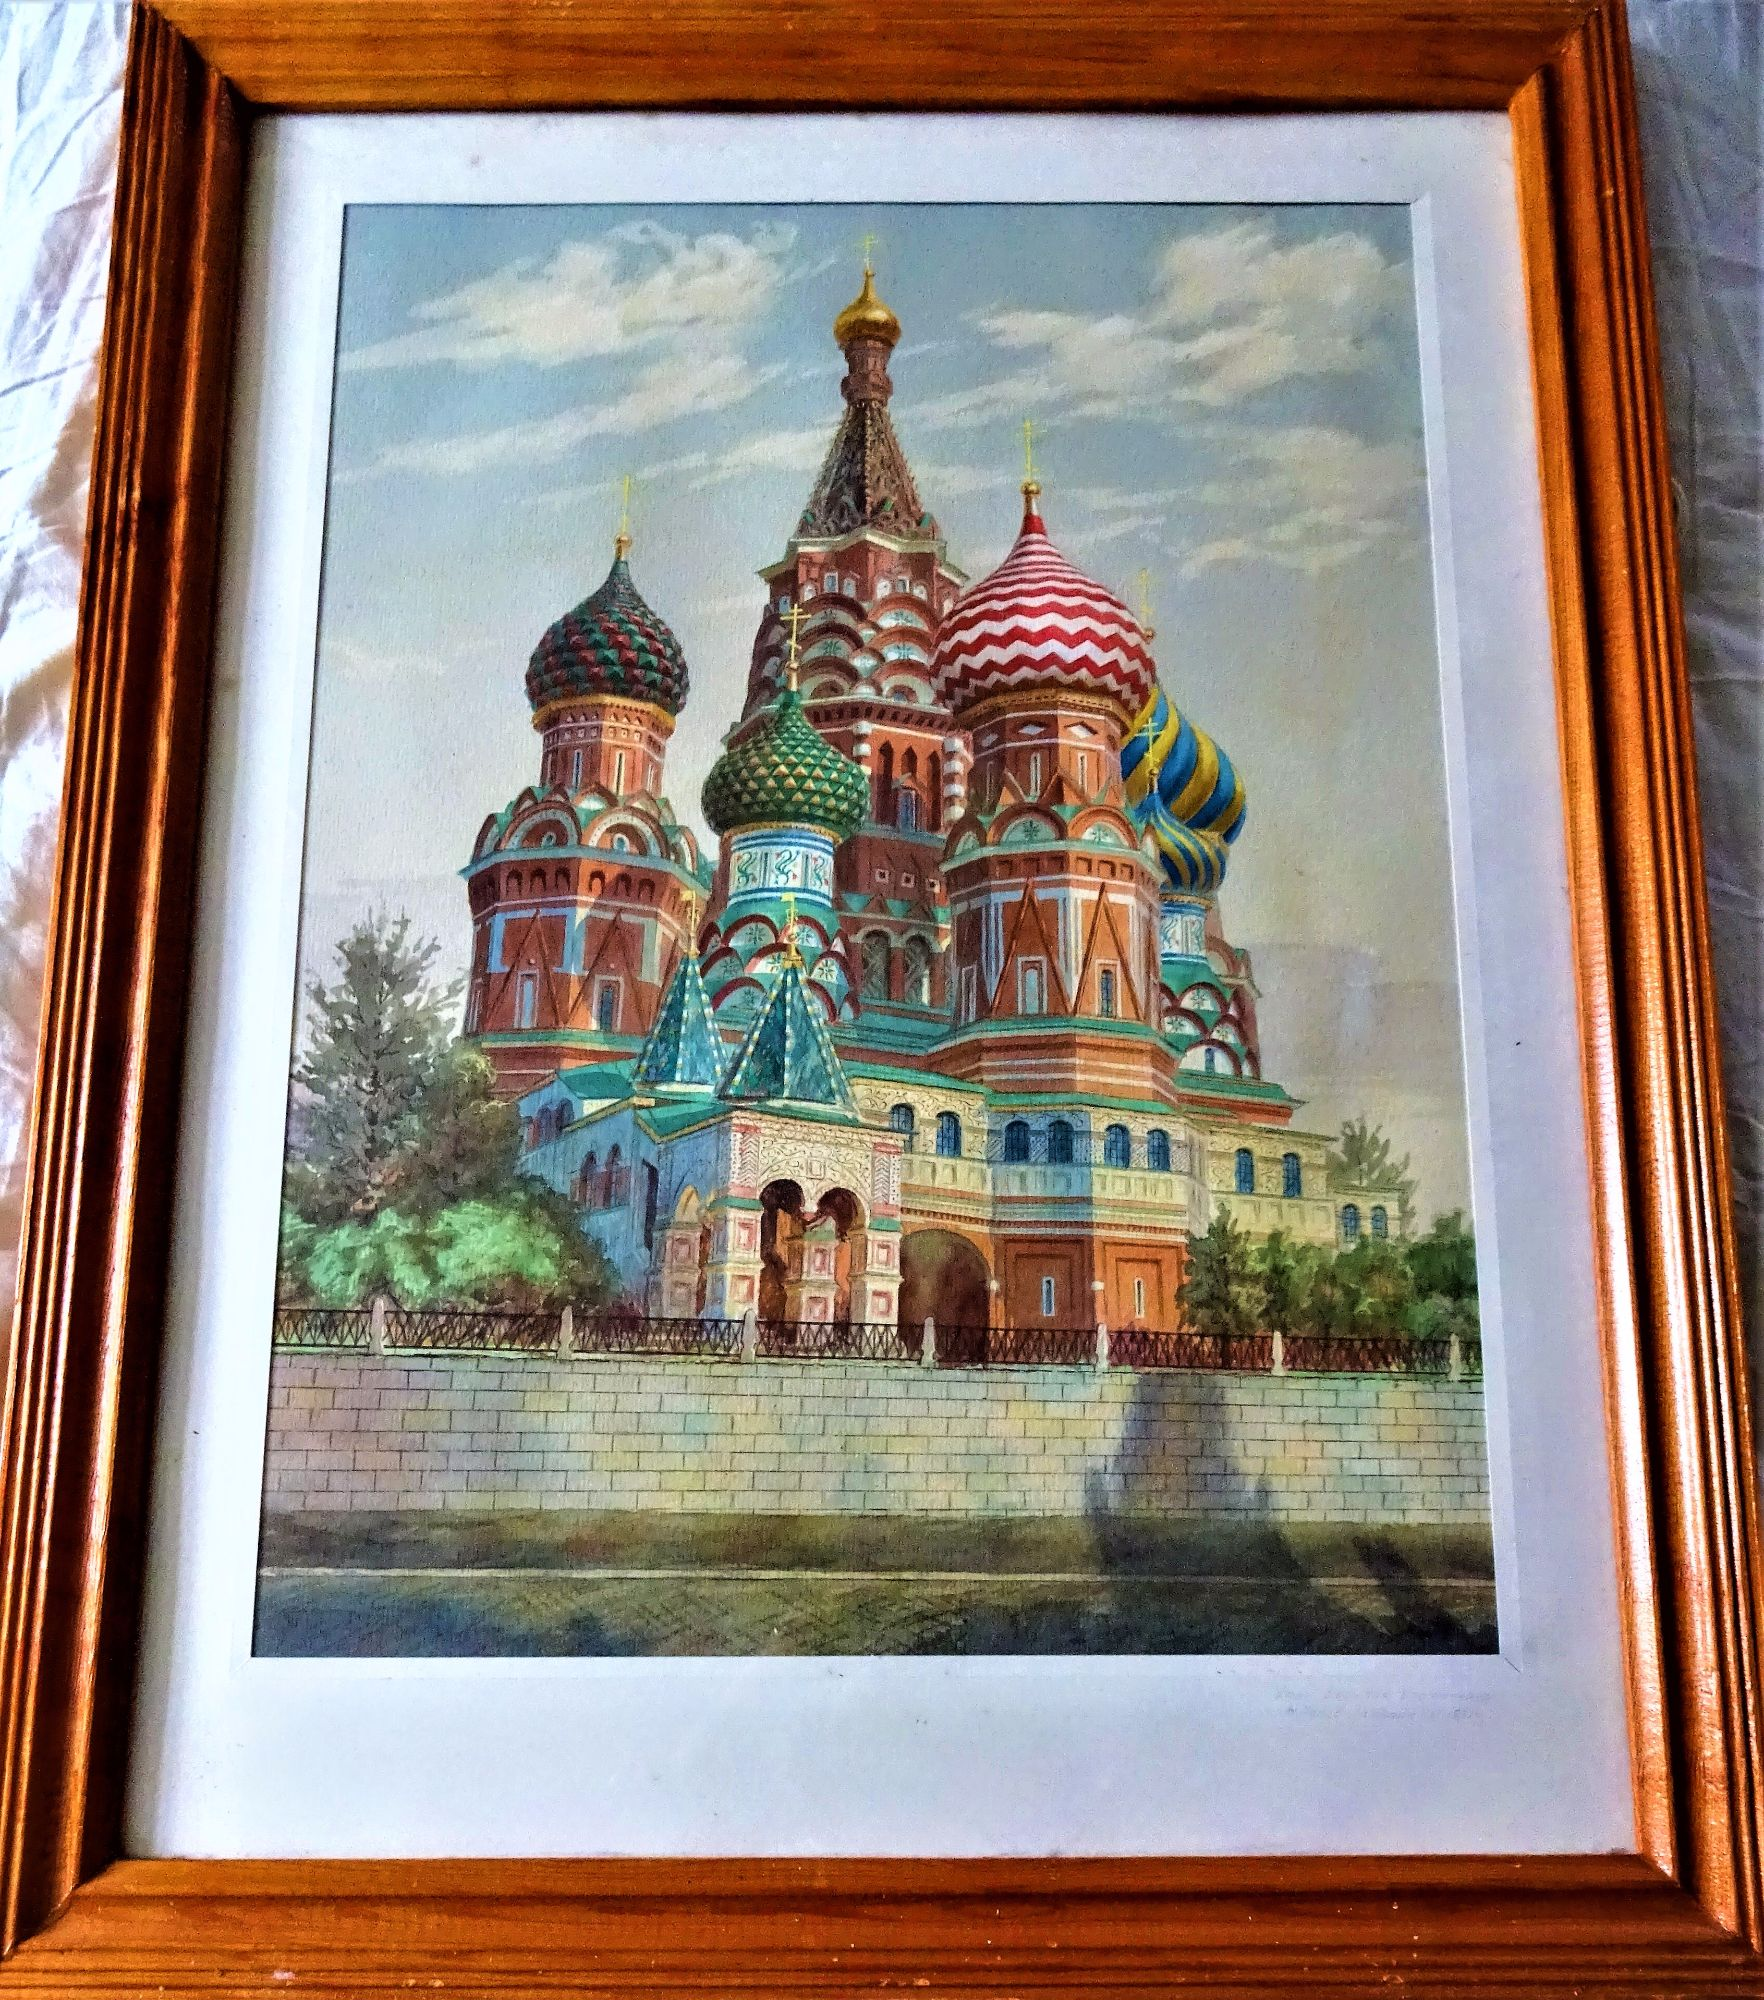 N. Popov, St. Basil's Cathedral, Red Square, Moscow, watercolour, 1991.